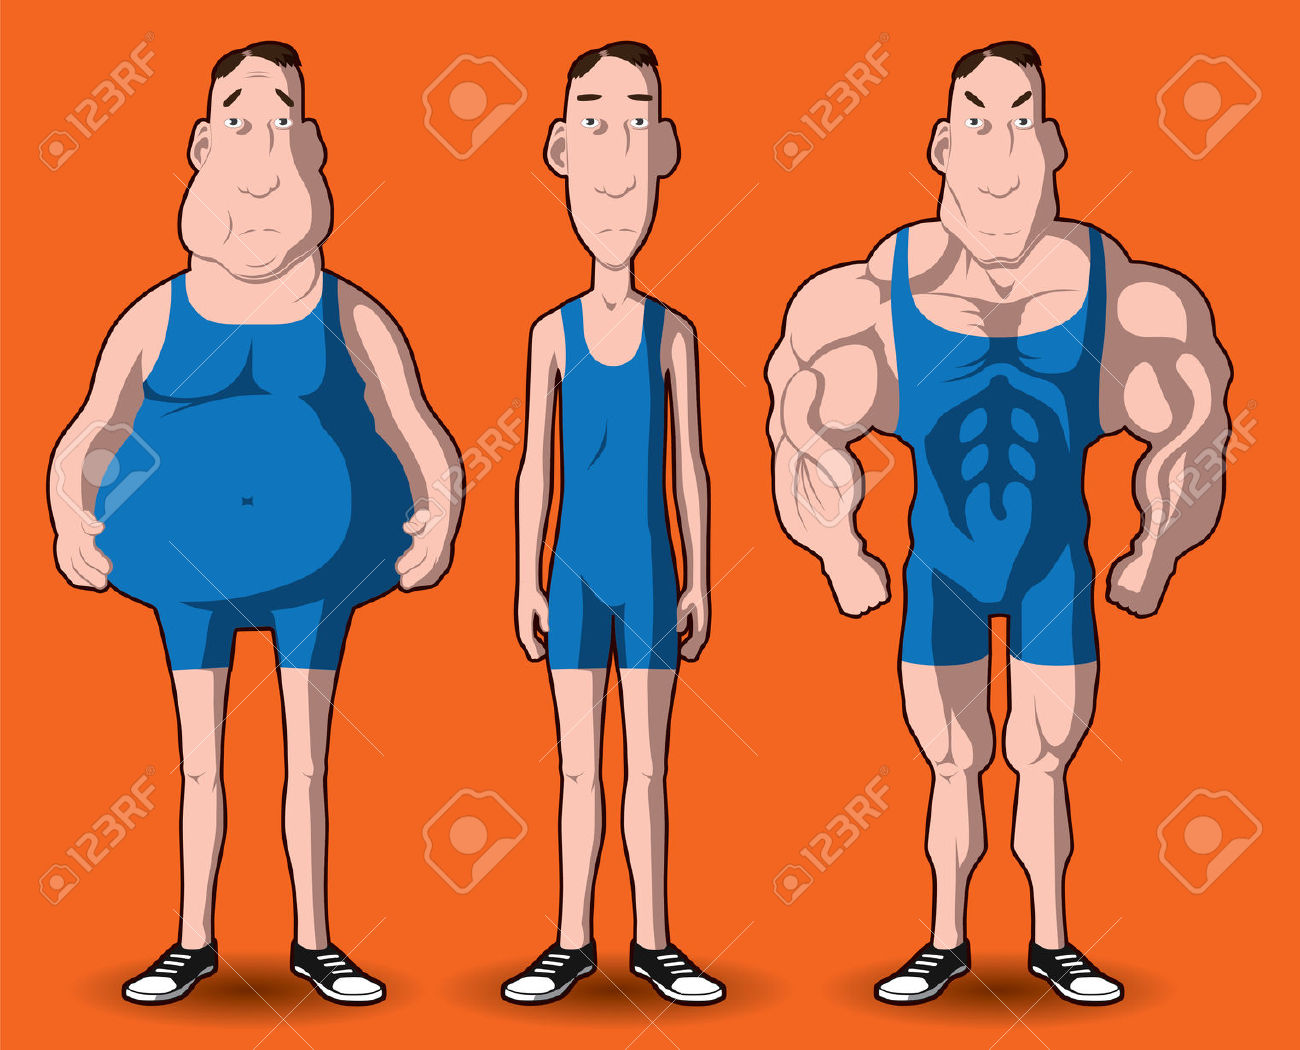 Body transformation clipart.